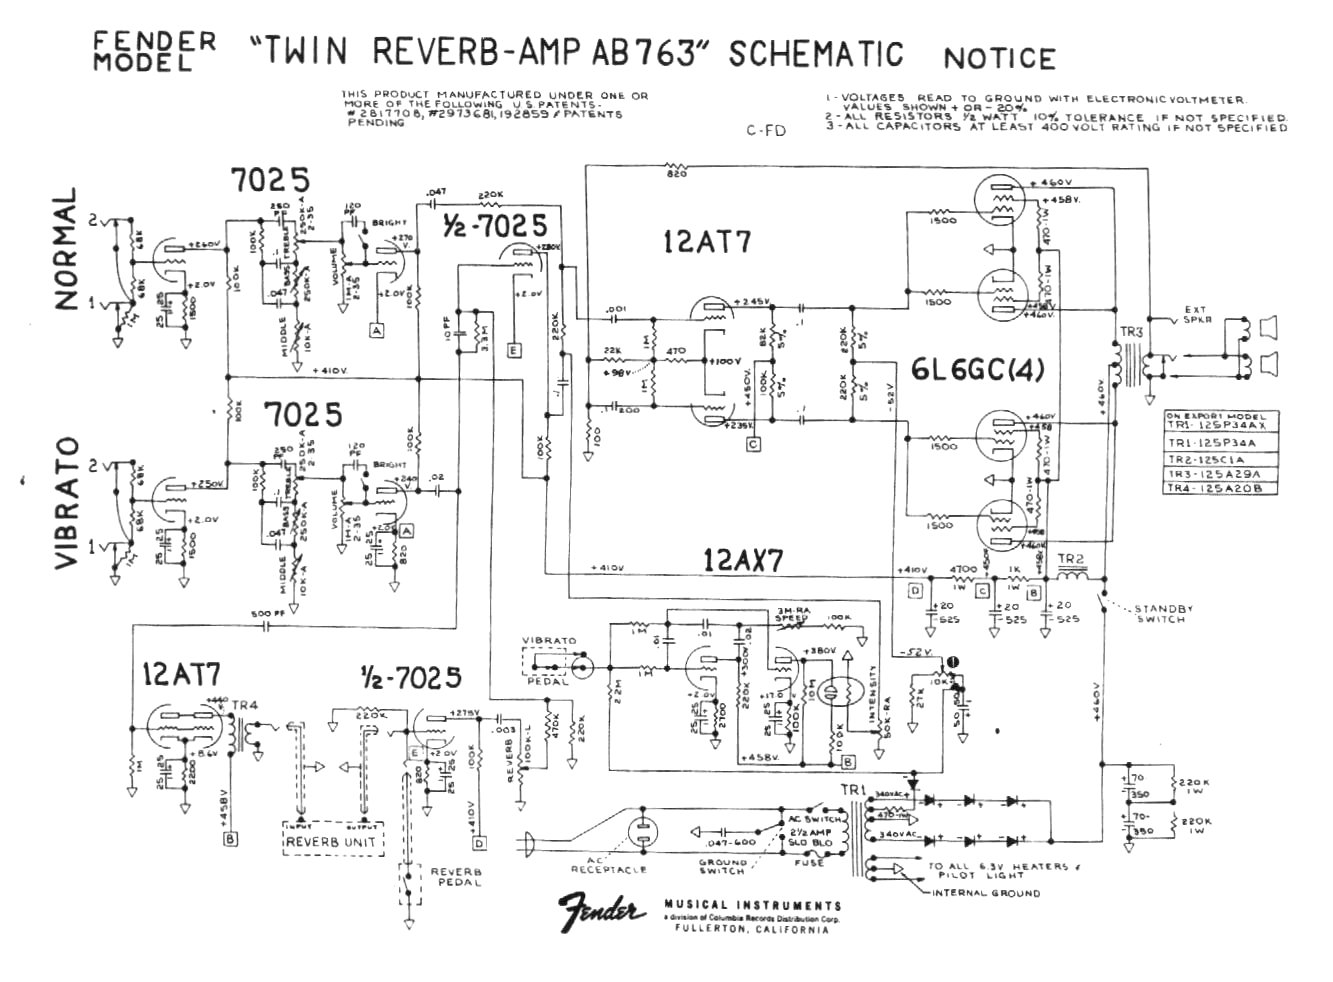 Schematics Bandmaster Reverb Schematic on super reverb schematic, one-line diagram, circuit diagram, princeton reverb schematic, peavey reverb schematic, technical drawing, tube map, functional flow block diagram, fender bandmaster ab763 schematic, deluxe reverb schematic, piping and instrumentation diagram, fender reverb schematic, vibrolux reverb schematic, twin reverb schematic, pro reverb schematic, block diagram,